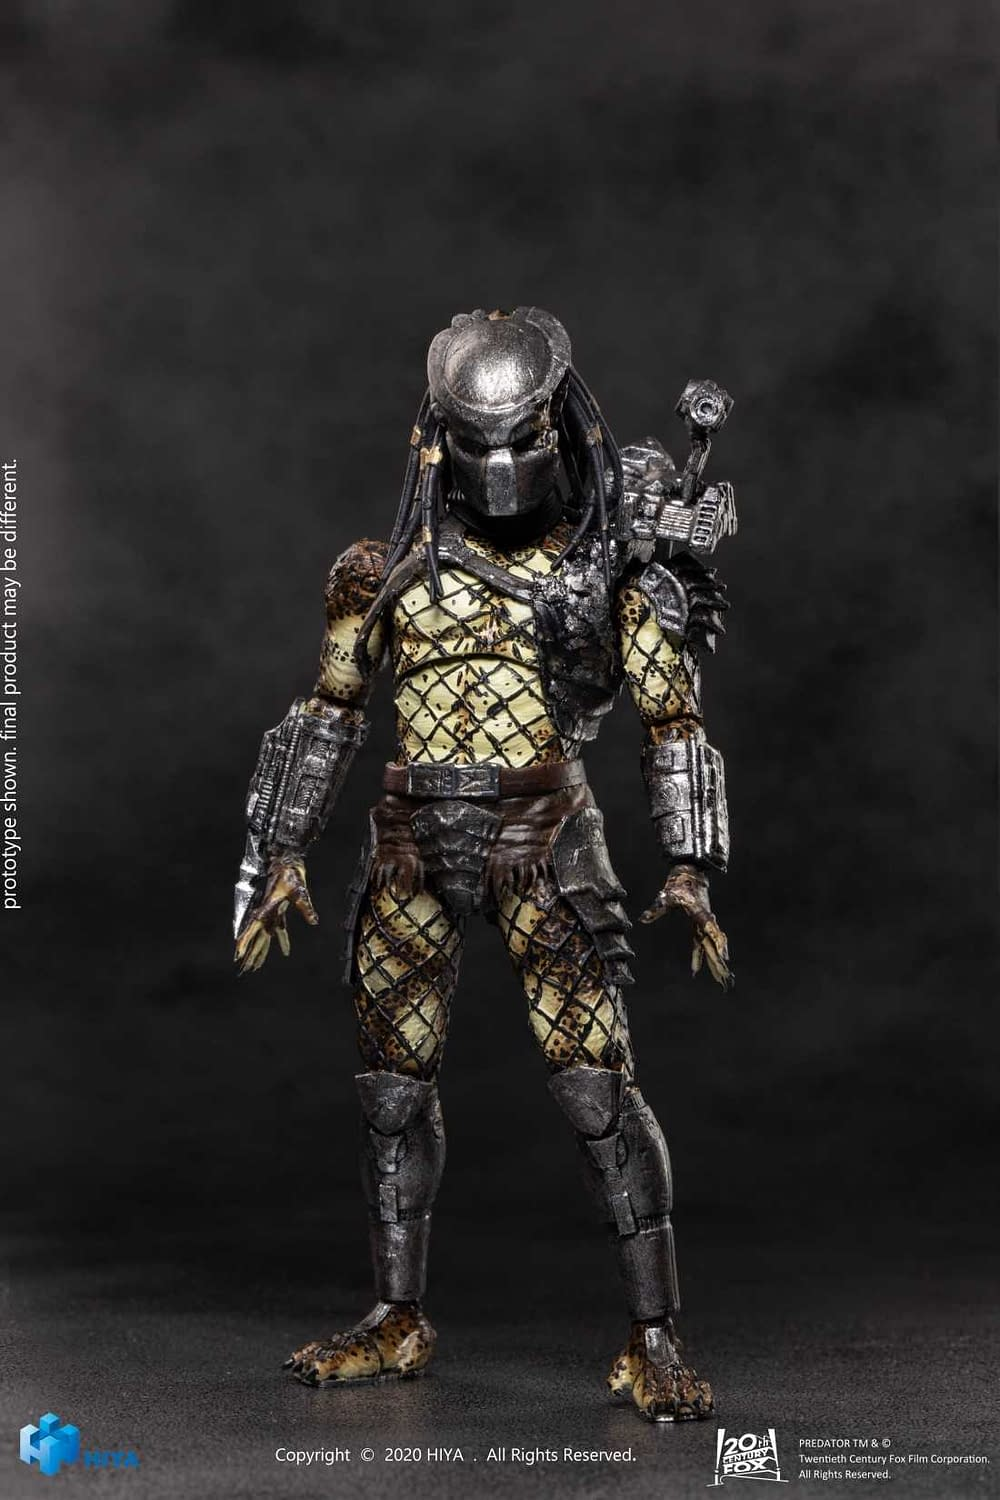 """RoboCop"" and ""Predators"" Get More Figures from Hiya Toys"